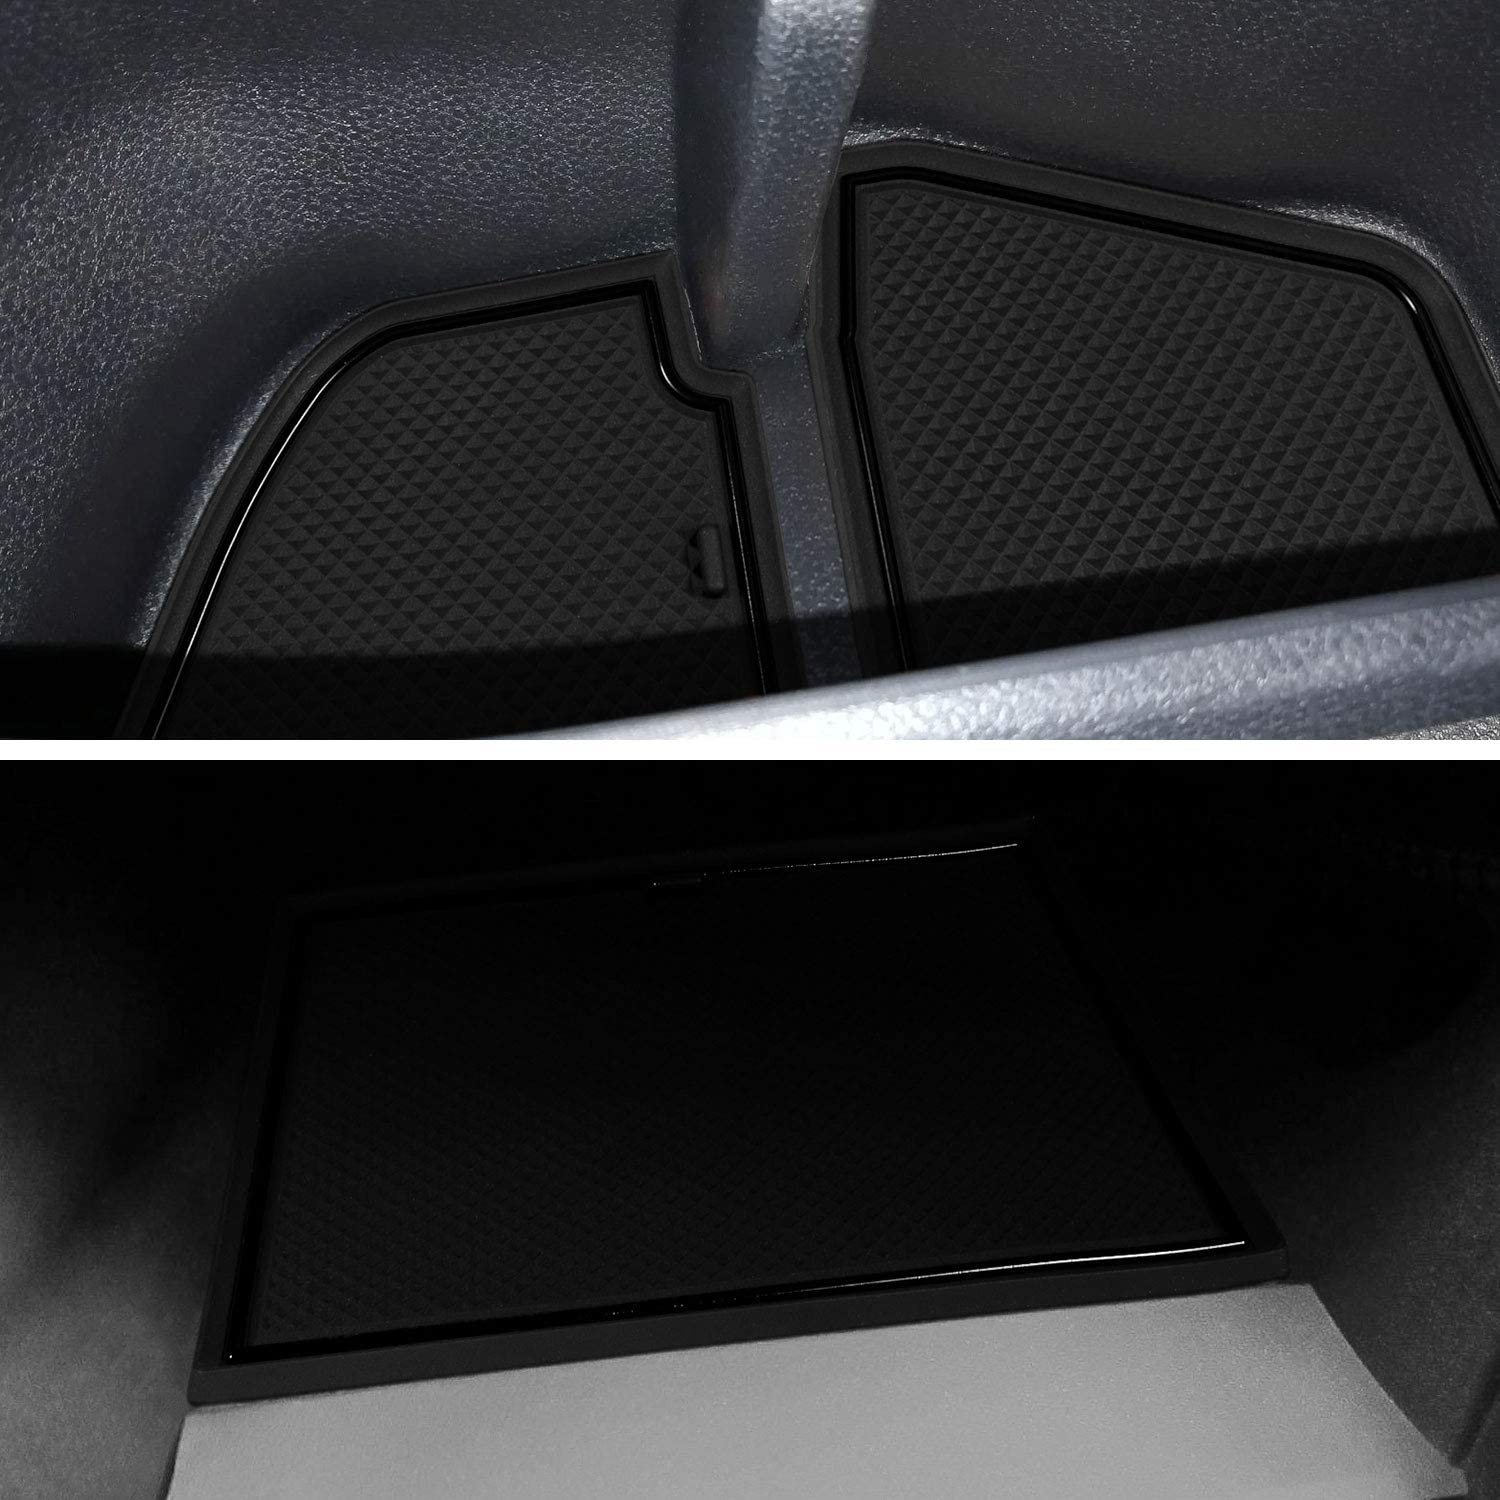 LAIKOU for Subaru Crosstrek 2018-2020 and Subaru Impreza 2017-2020 Custom Liner Accessories Premium Cup Holder Console and Door Pocket Inserts 19-pc Set Solid Black